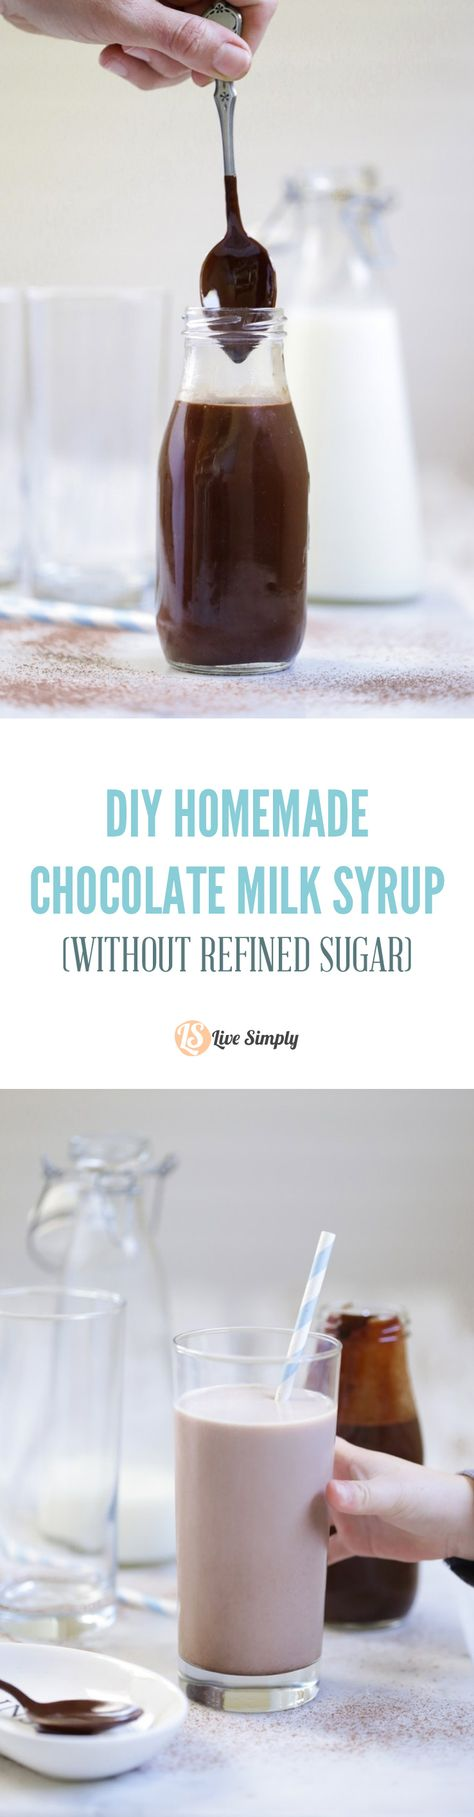 Finally, a chocolate milk syrup I can feel good about serving to my kids. This homemade chocolate milk syrup is made without any refined sugar or artificial ingredients. Plus, it last for months in the fridge. And it only takes 5 minutes to make!